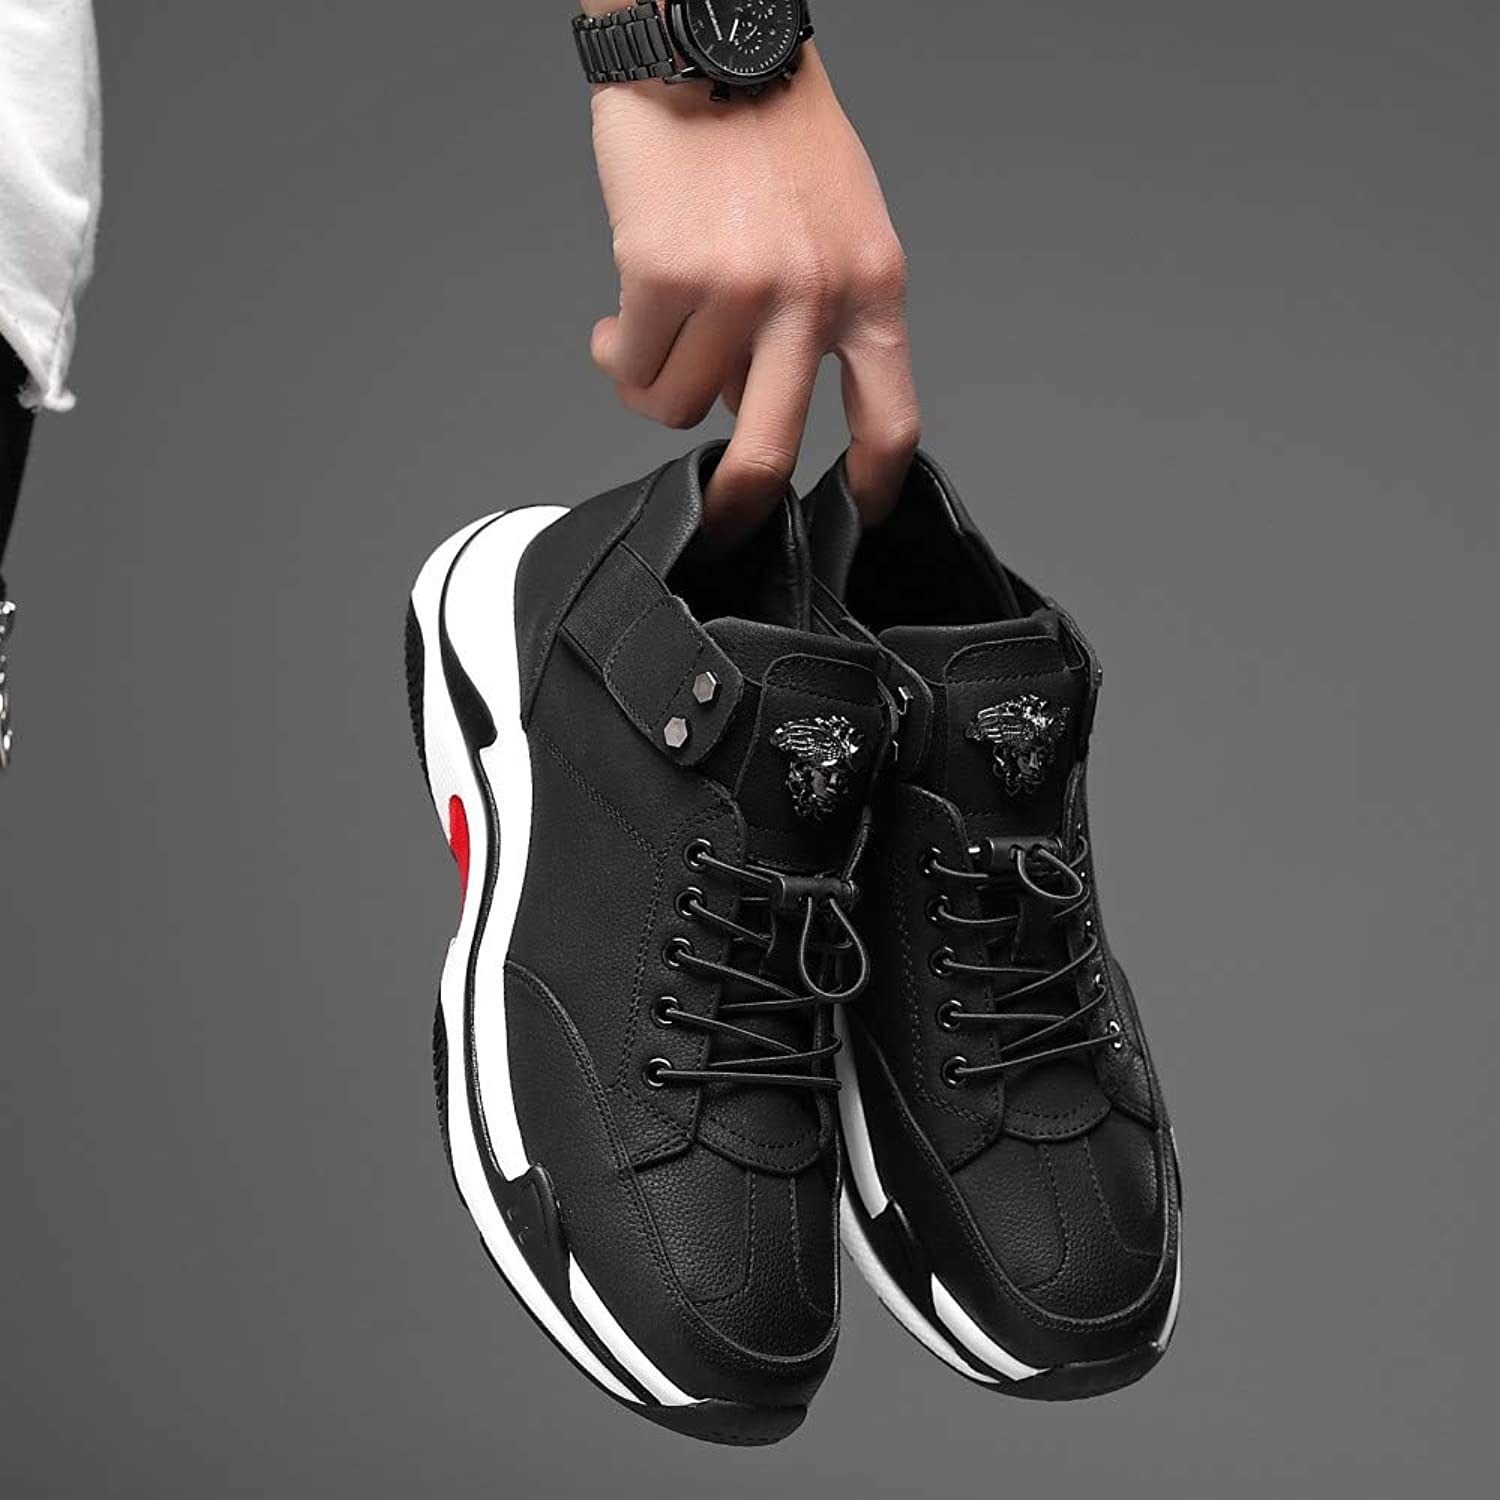 Hasag Sports shoes New Men's shoes Sports Fashion Casual shoes